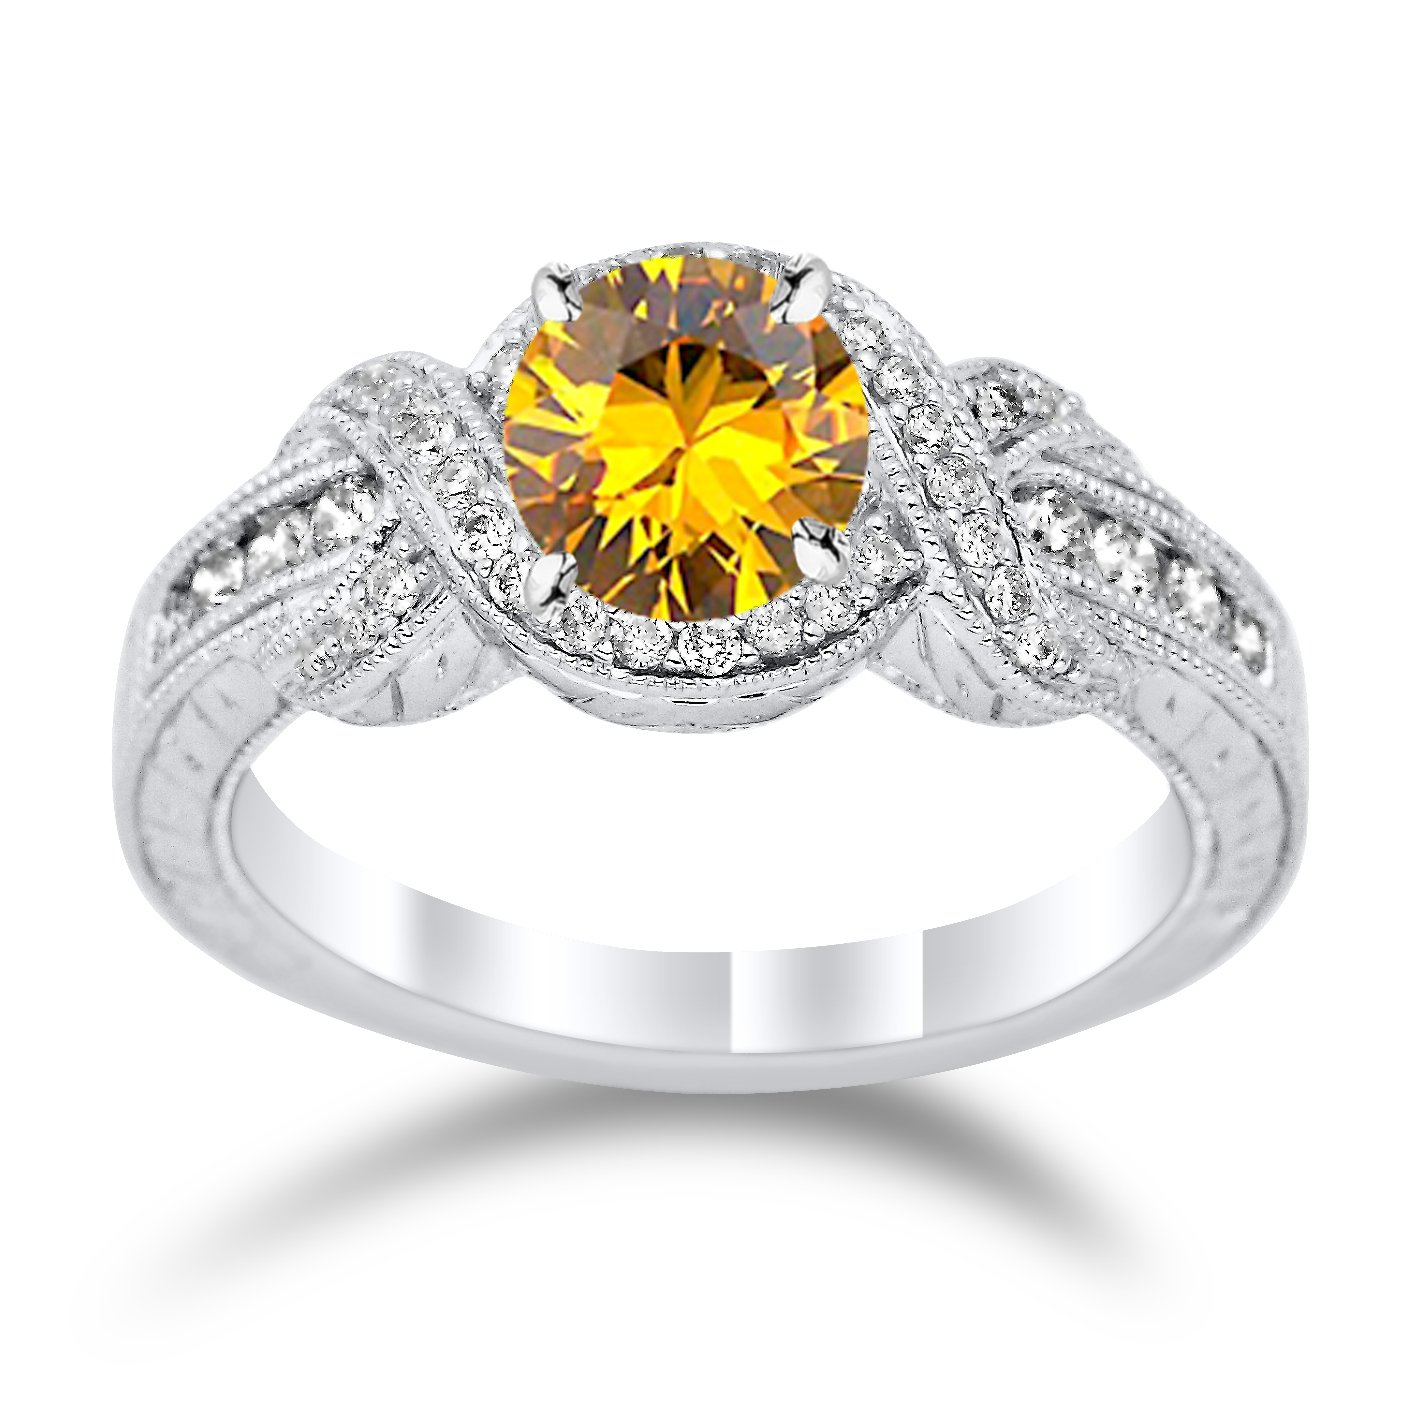 14K White Gold Twisting Channel Set Knot Diamond Engagement Ring with a 1.5 Carat Citrine Heirloom Quality Center